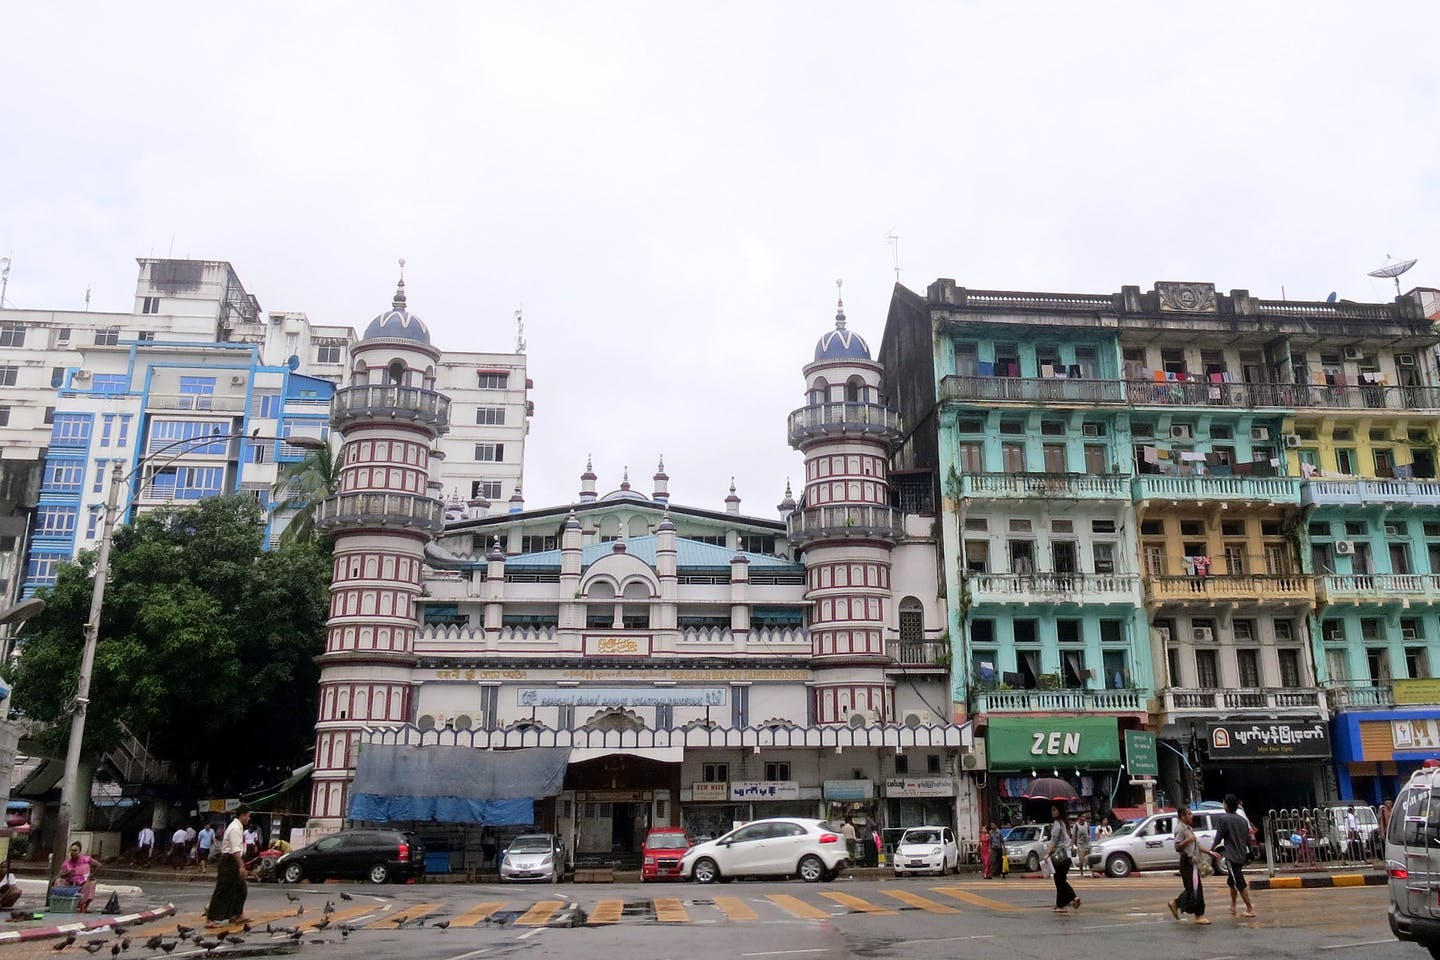 Yangon buildings